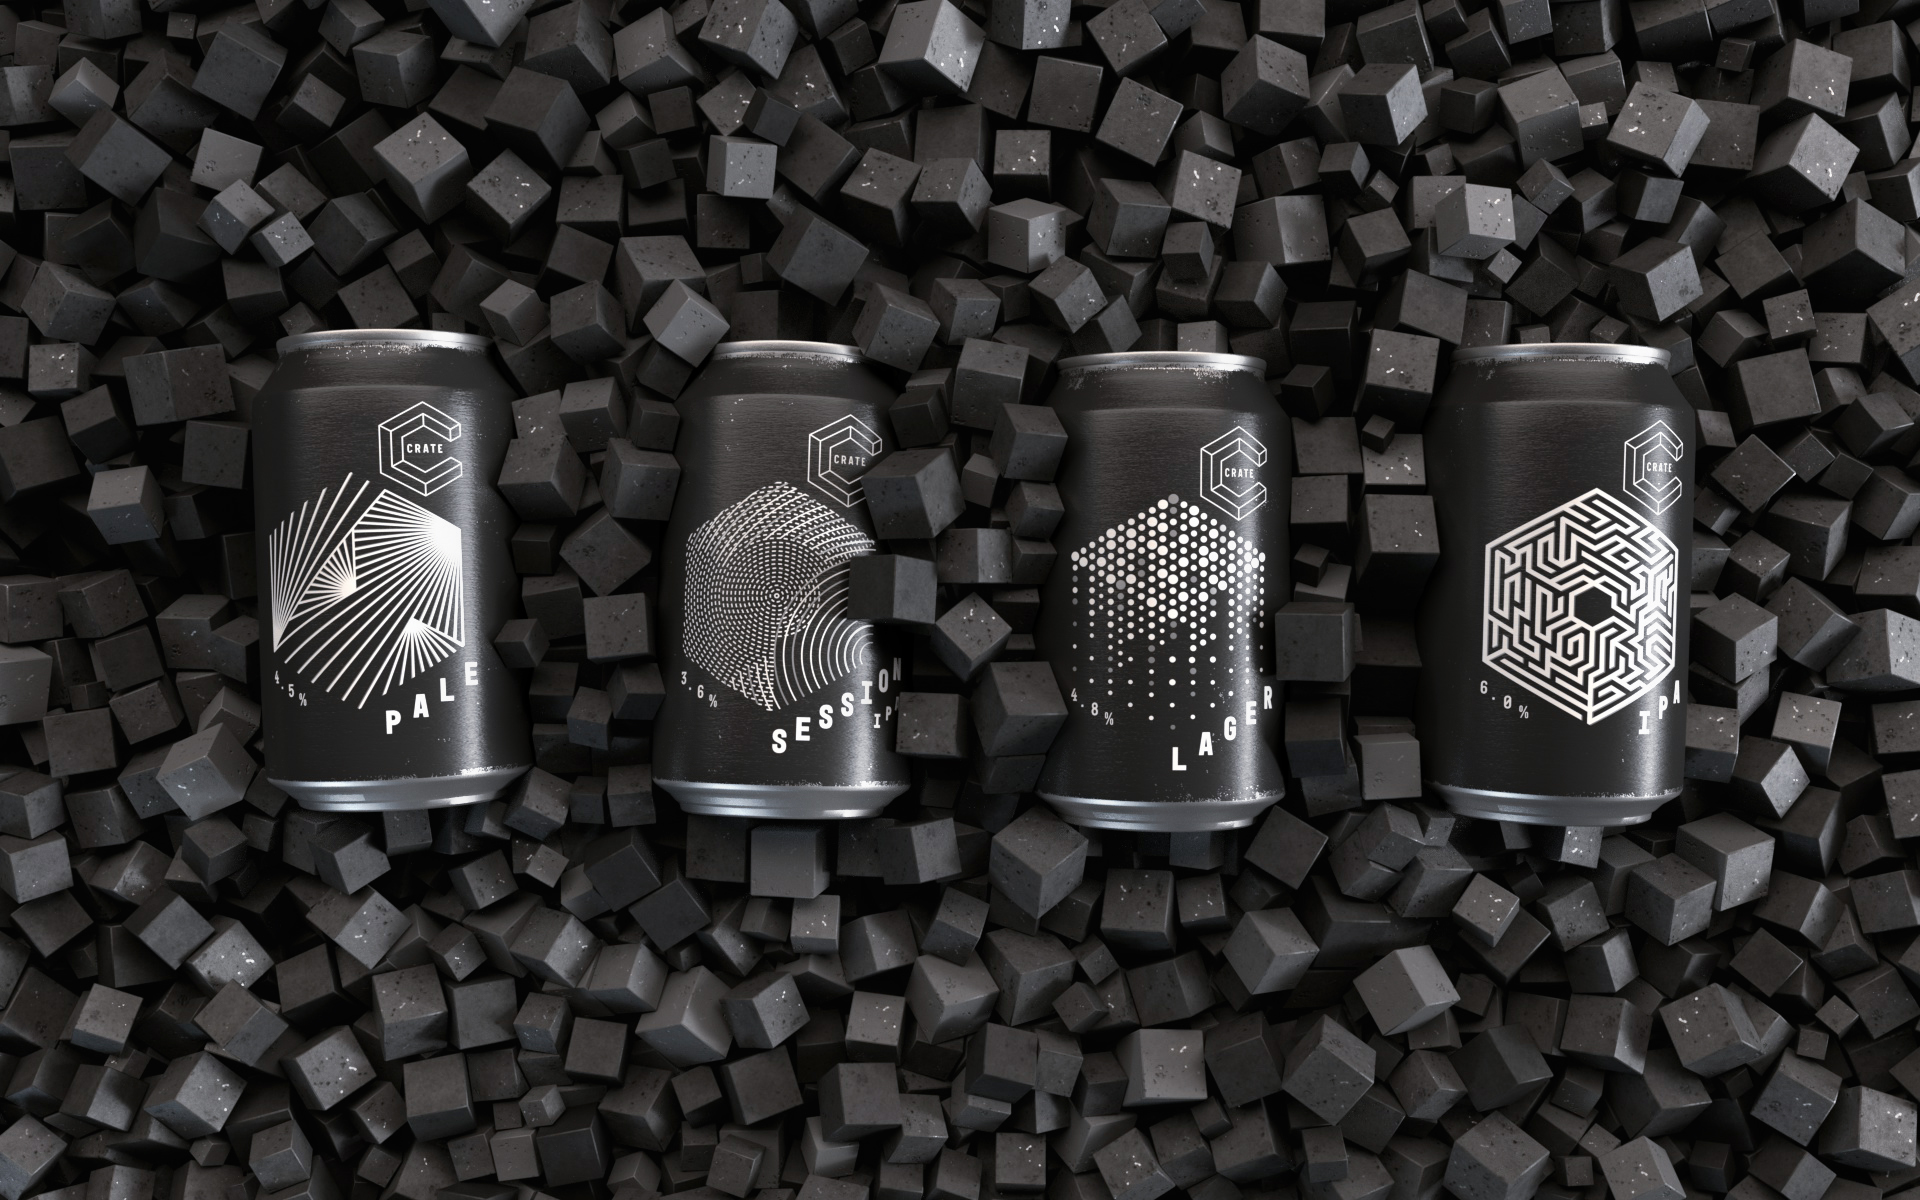 craft-beer-cans-3d-render-group-image